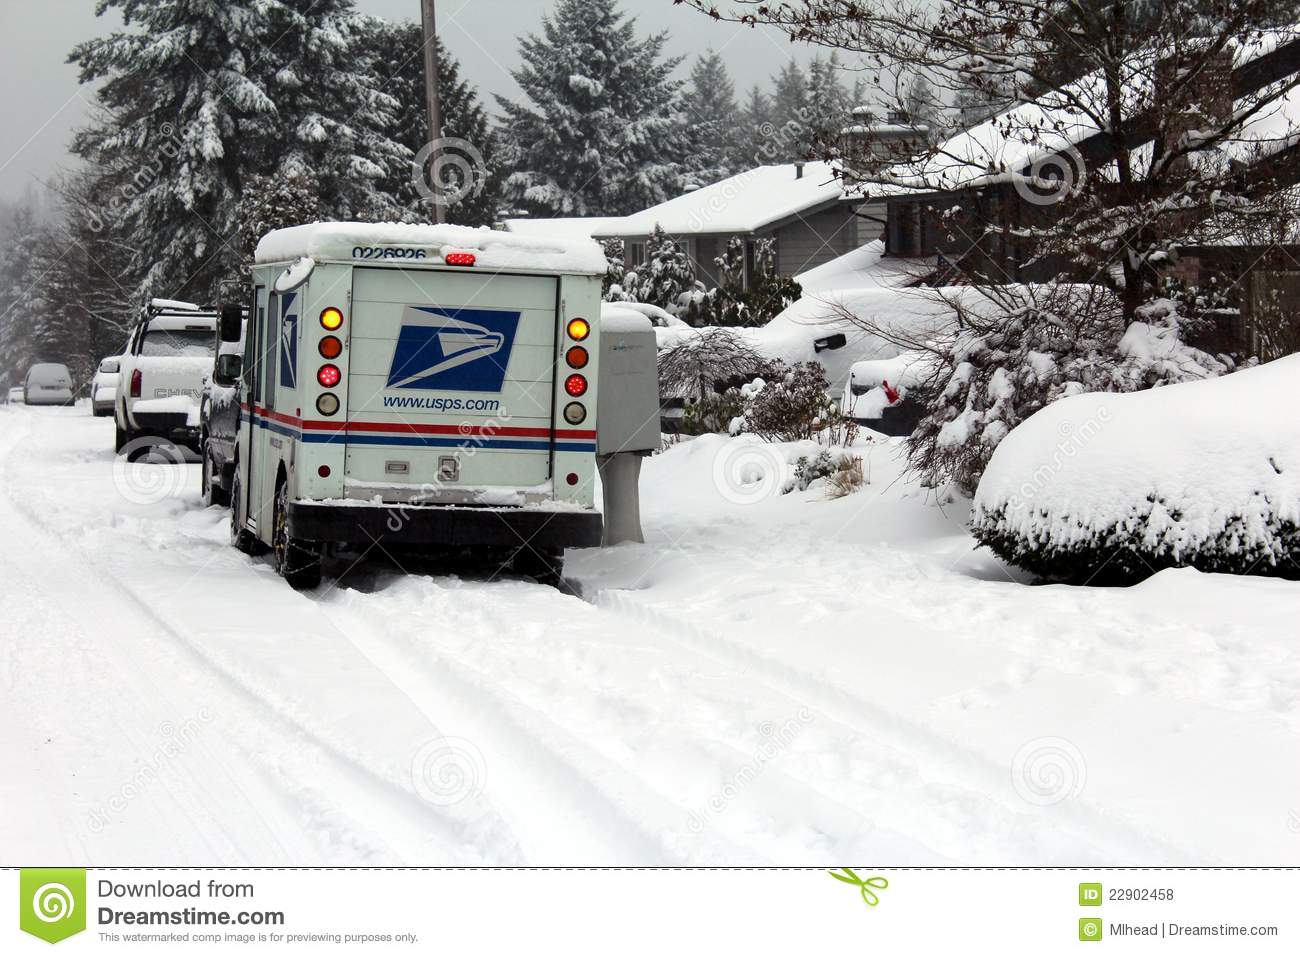 Fotos In Postergröße Mail Delivery During Snow Storm Editorial Stock Photo